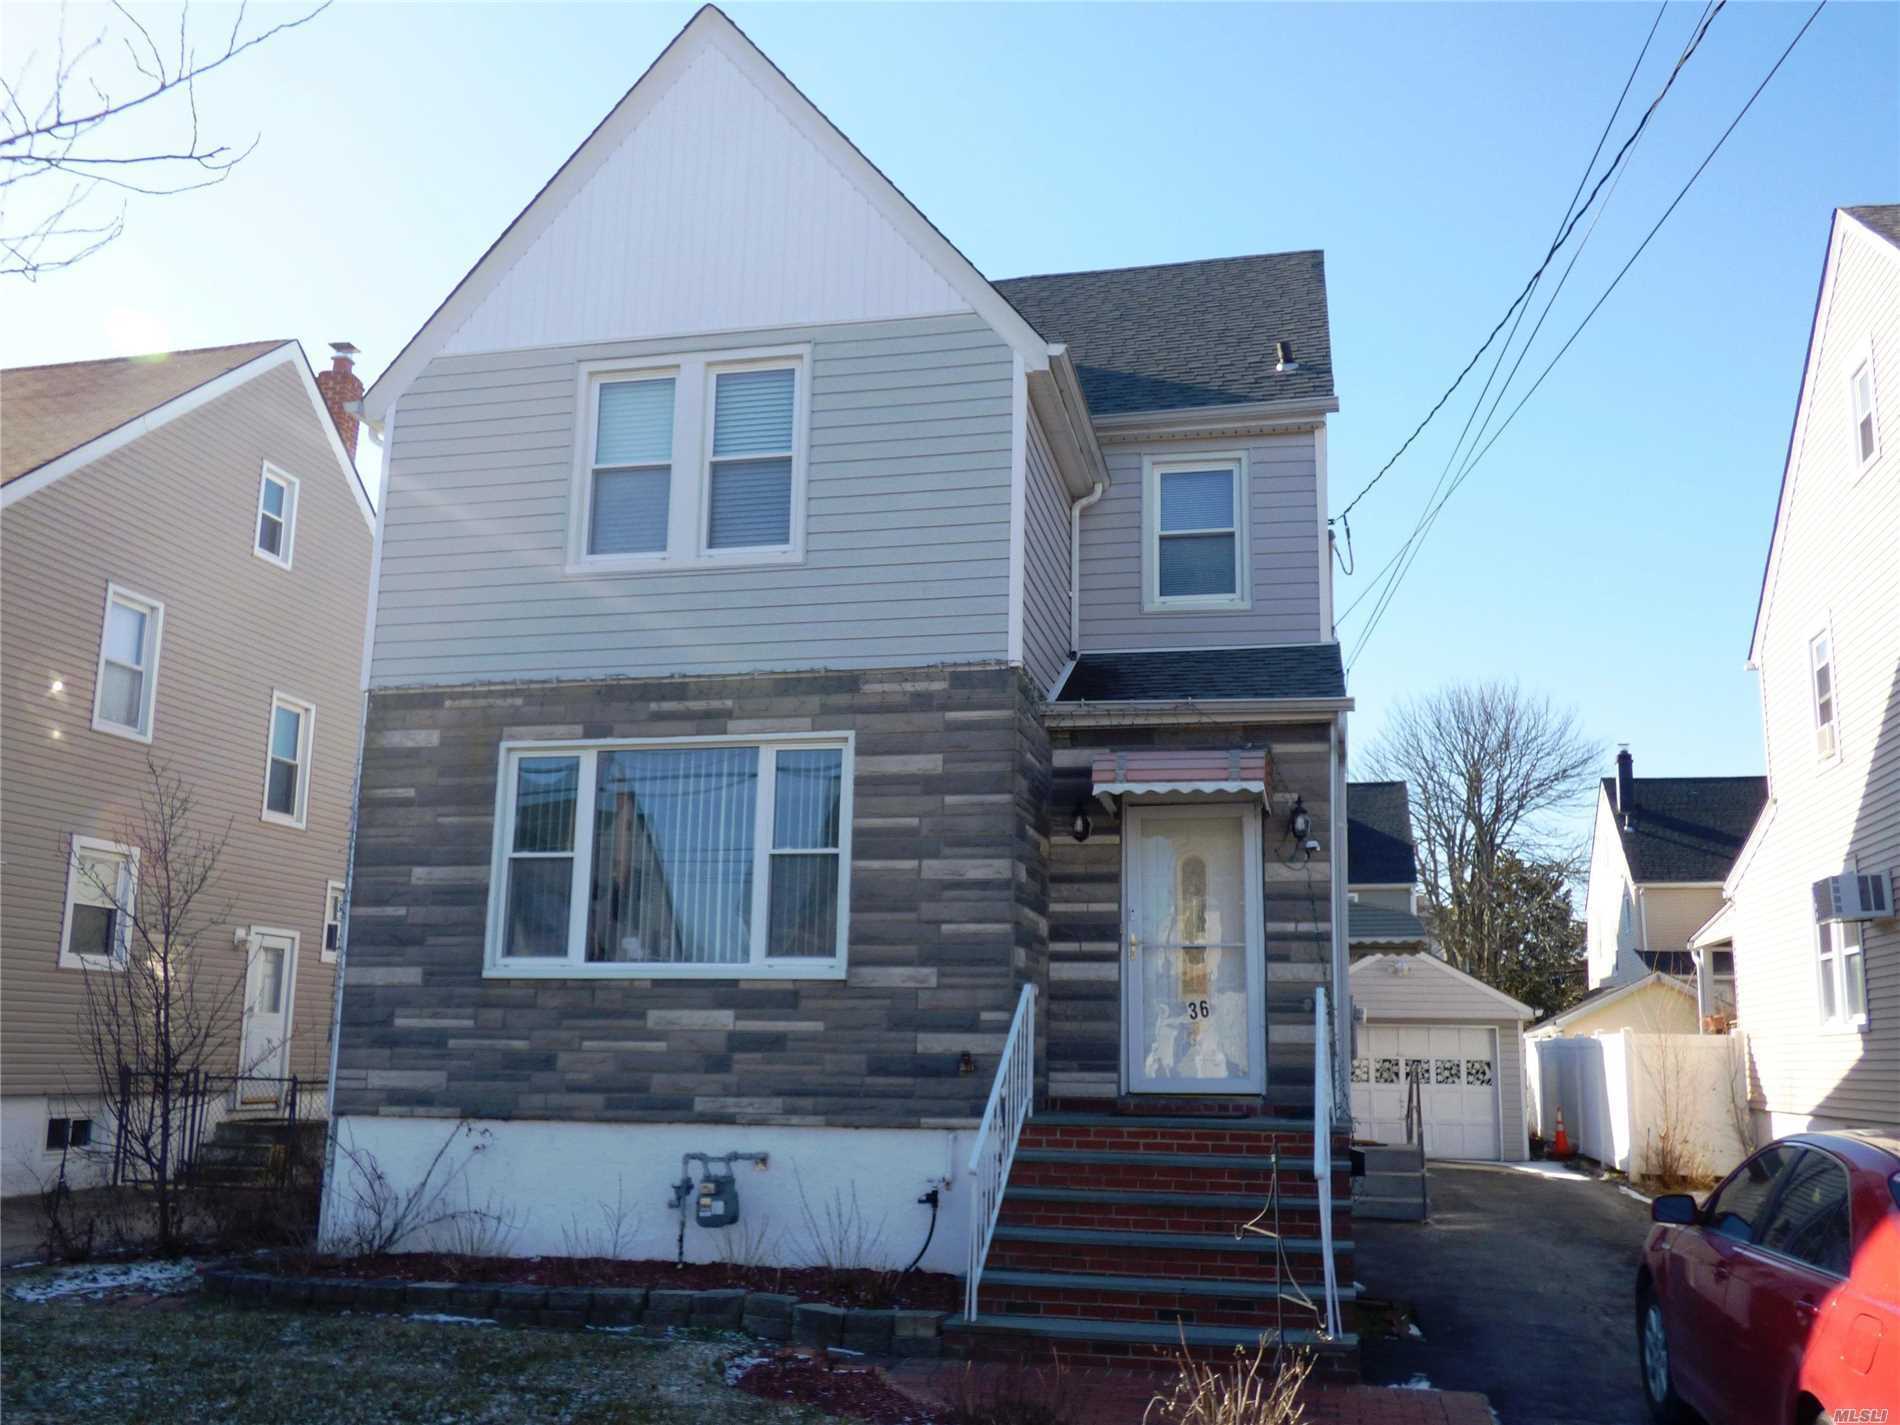 Spacious And Bright 1st Floor 2 Br Apartment With Full Finished Basement. 1st Floor Mbr, Br, Eik, Lr, Office/Den, Full Bath. Beautiful Hardwood Floors. Finished Basement W. Tile Floor, Large Family Room And Bonus Room And Second Full Bath. Access To Backyard. Two Driveway Parking Spaces.